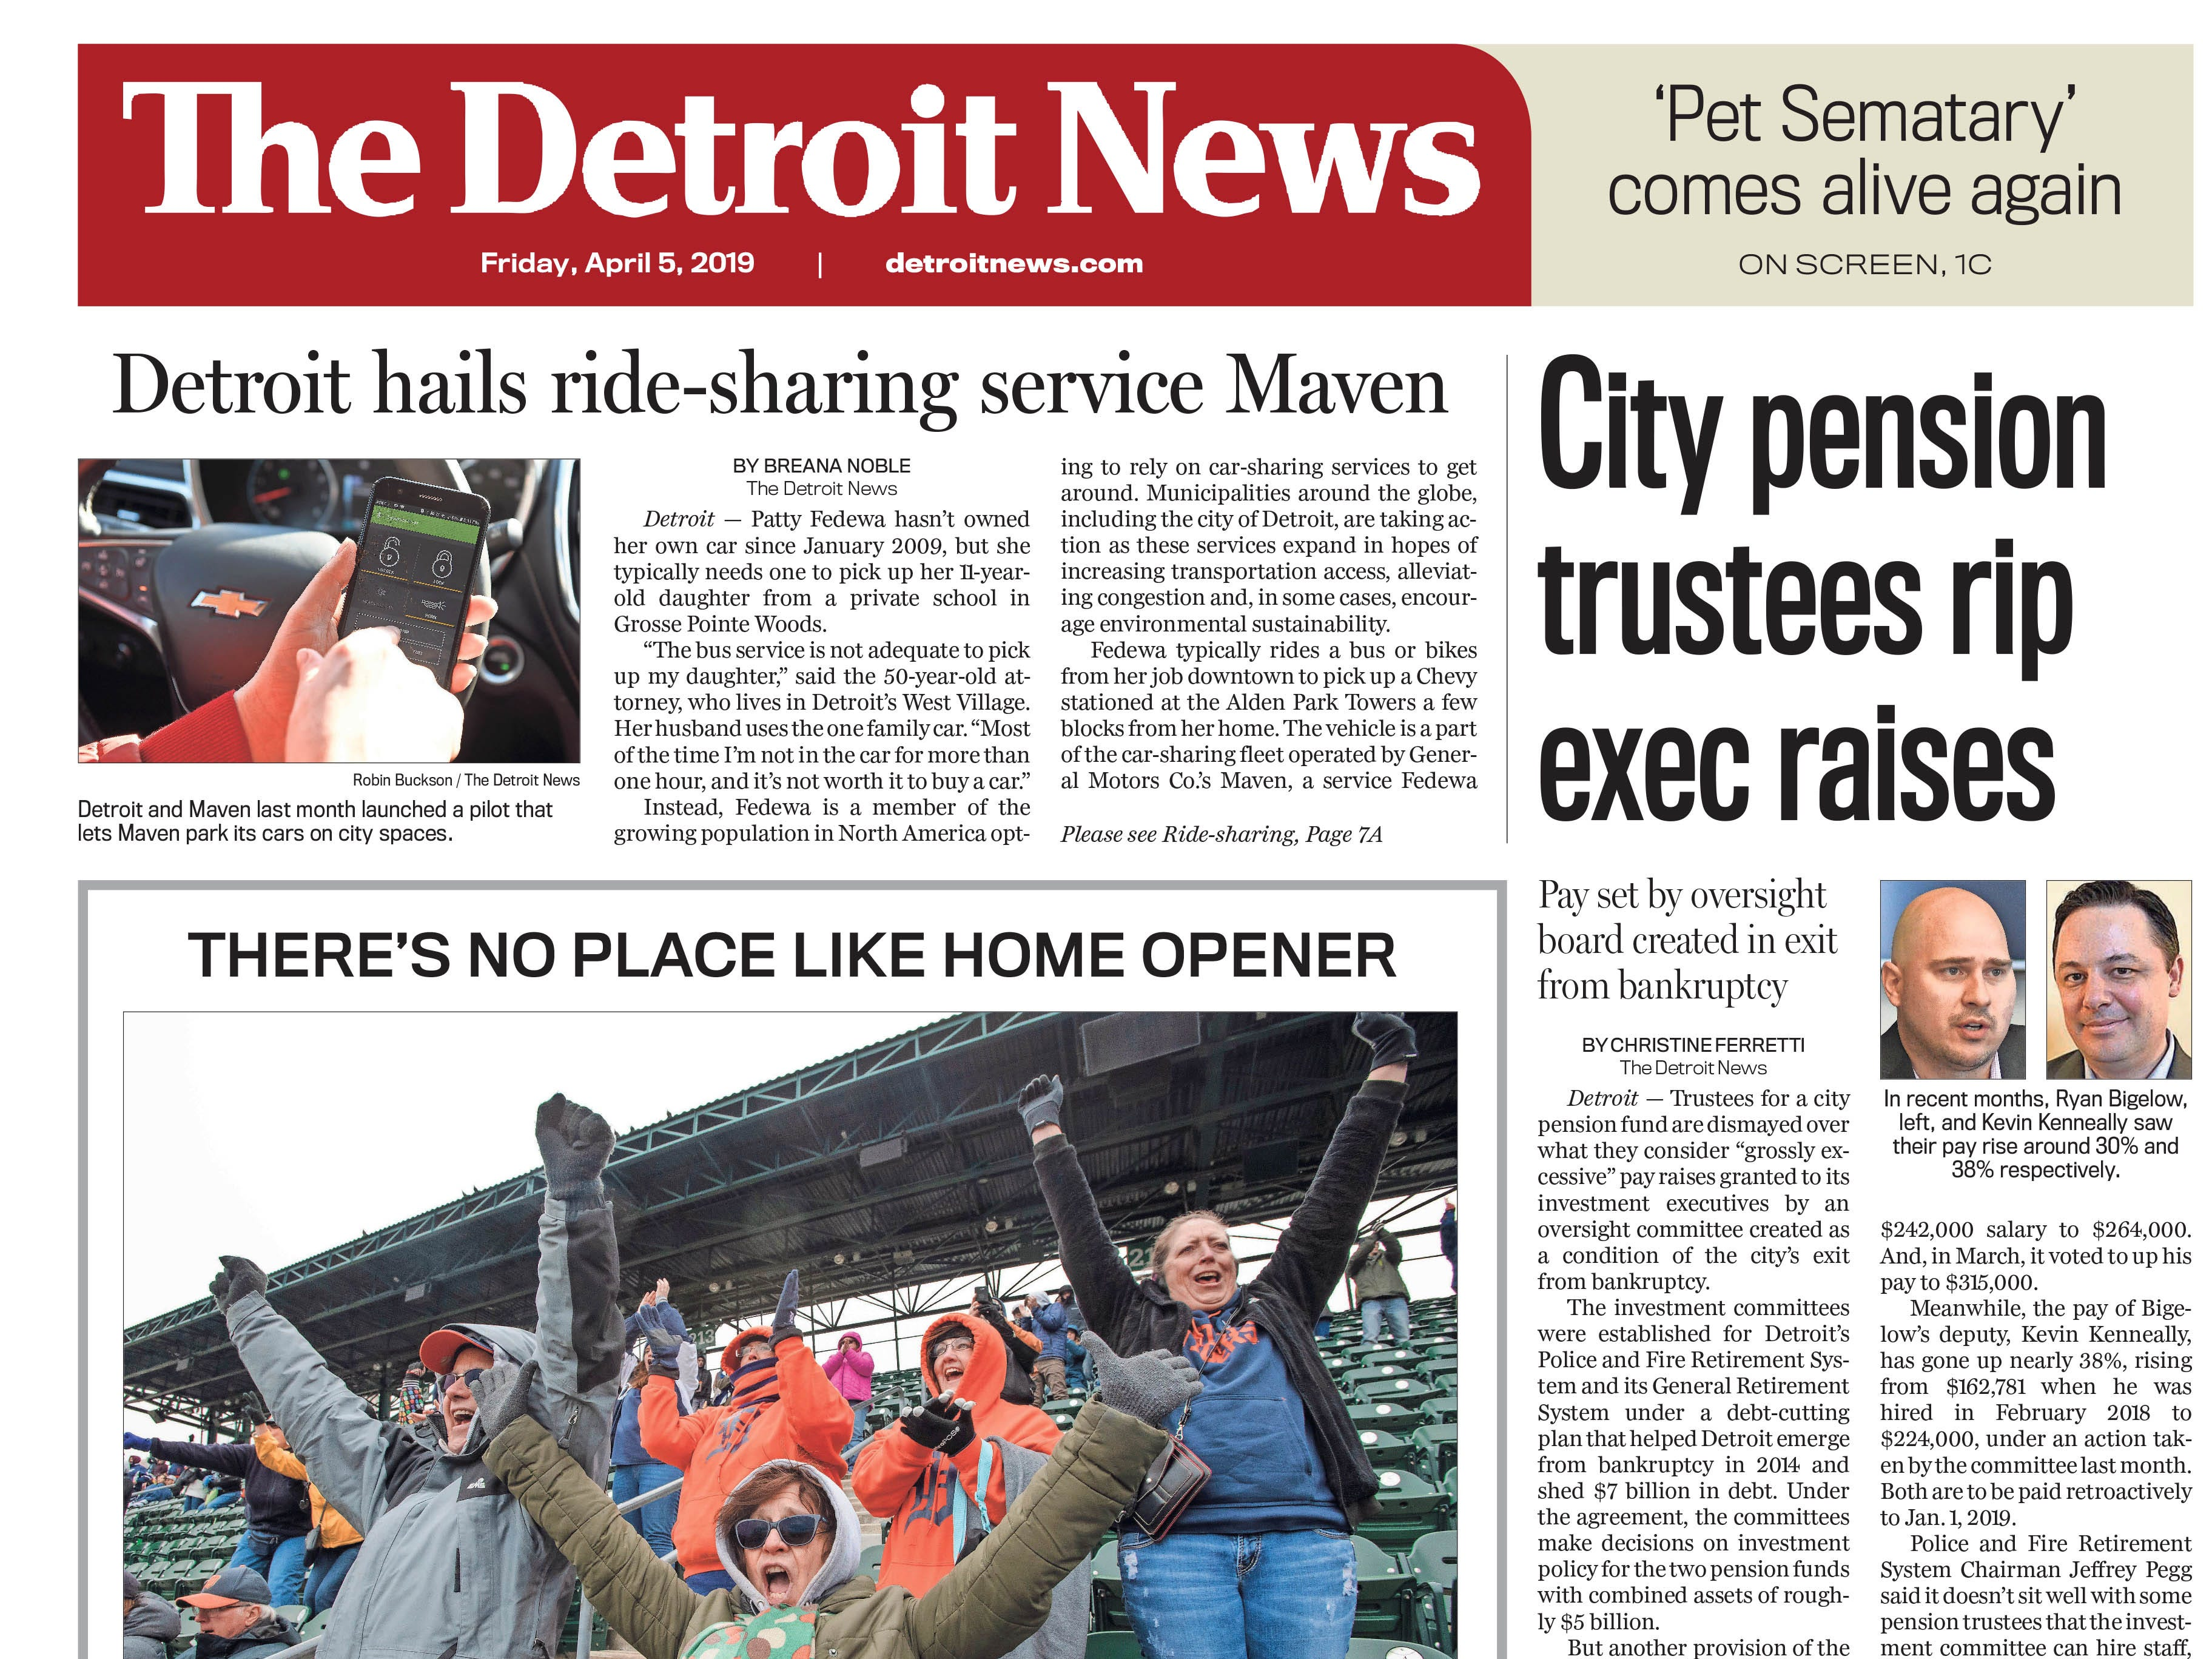 The front page of the Detroit News on Friday, April 5, 2019.